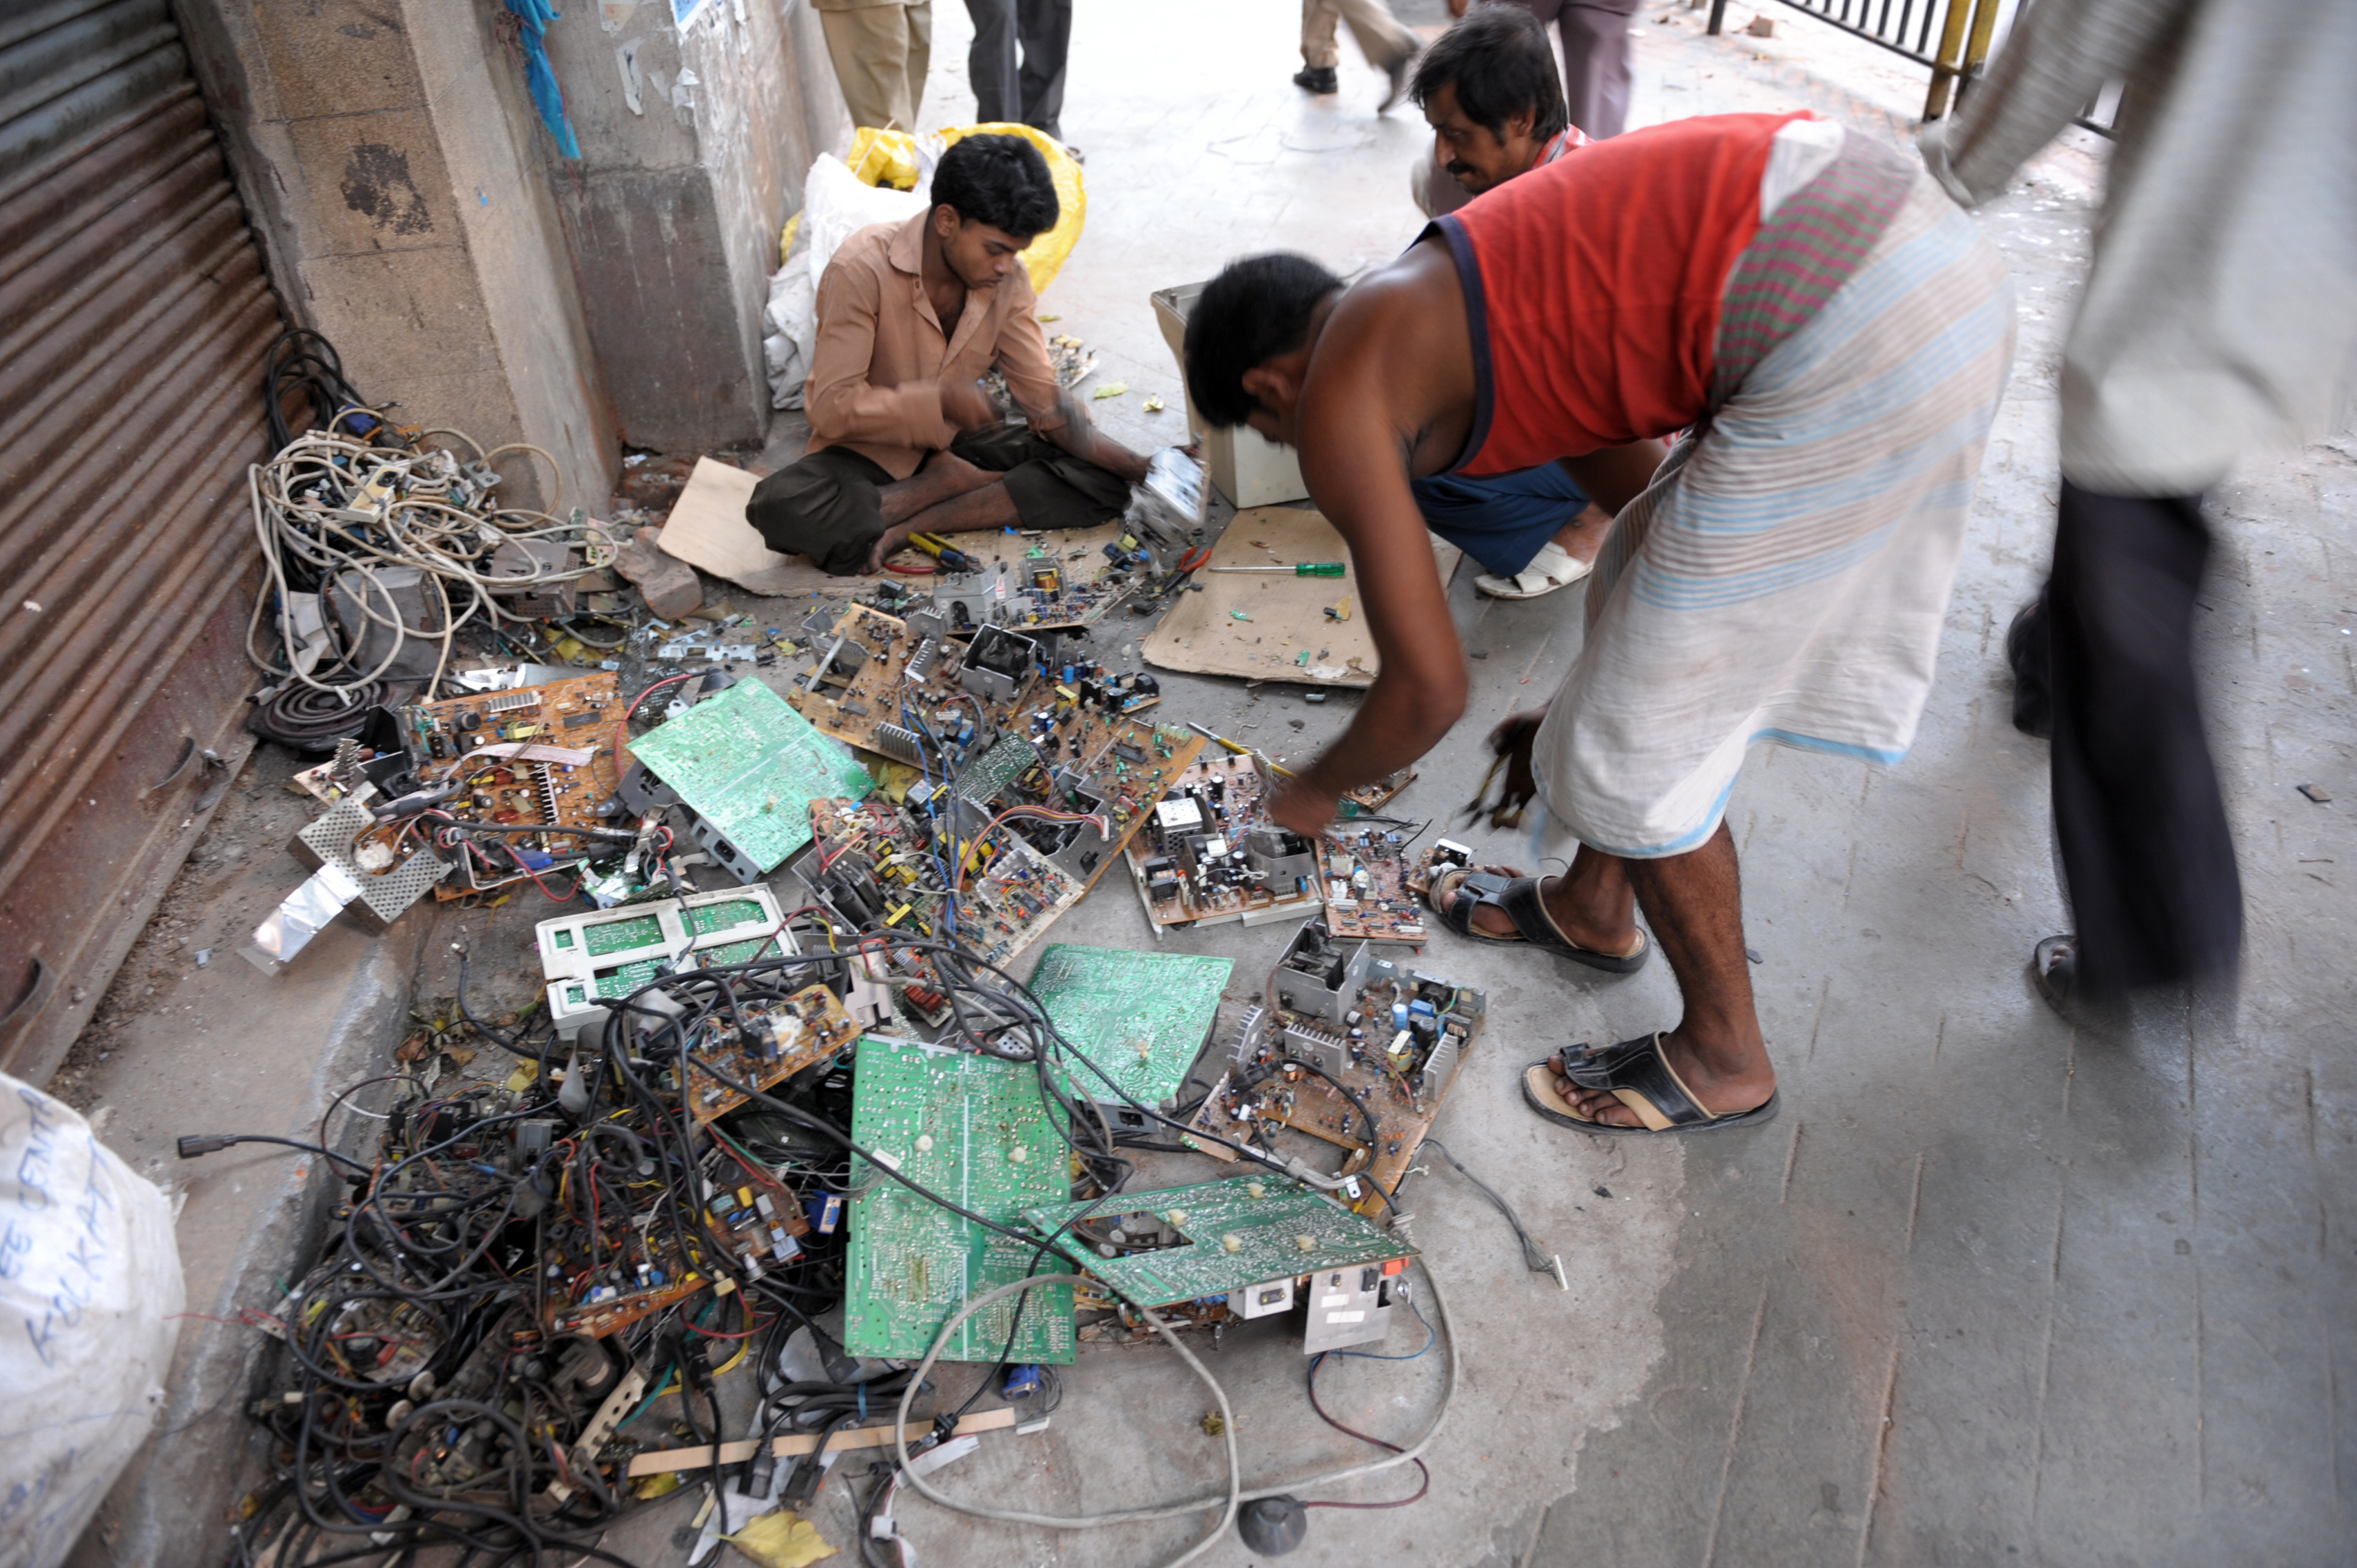 Indian youths dismantle reusable parts from electronic waste on a pavement of Kolkata on June 5, 2009, while the nation celebrates the World Environment Day. India is likely to generate as much as 800,000 tonnes of electronic waste by 2012, and there's only one government - registered recycling firm, Indian news paper The Hindu reports. AFP PHOTO/Deshakalyan CHOWDHURY / AFP PHOTO / DESHAKALYAN CHOWDHURY